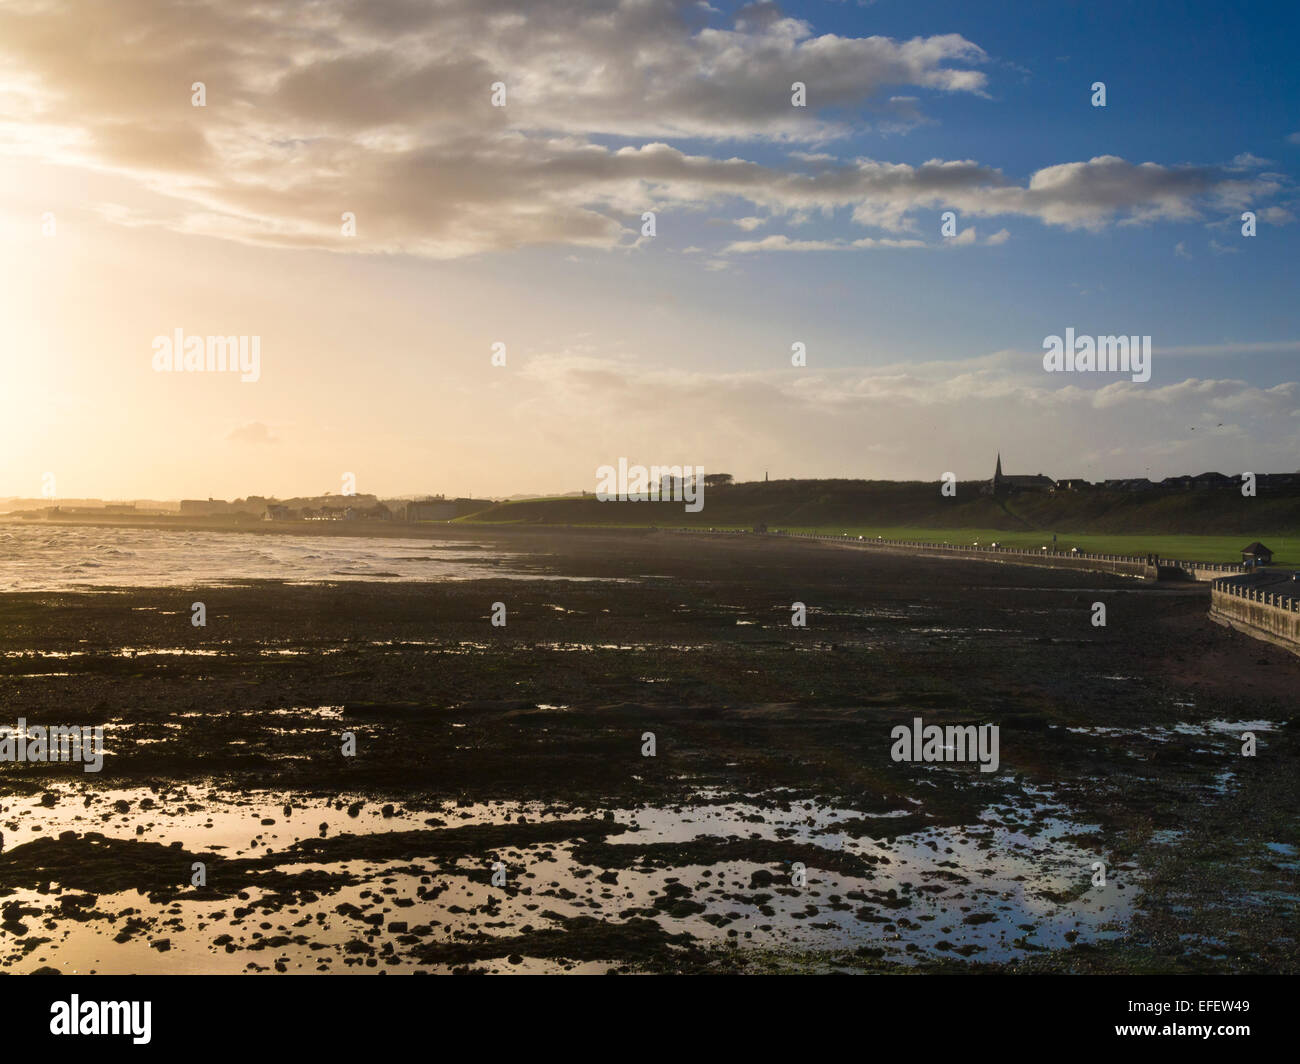 Sunsetting on the beachfront by Victoria Park in Arbroath, Scotland - Stock Image